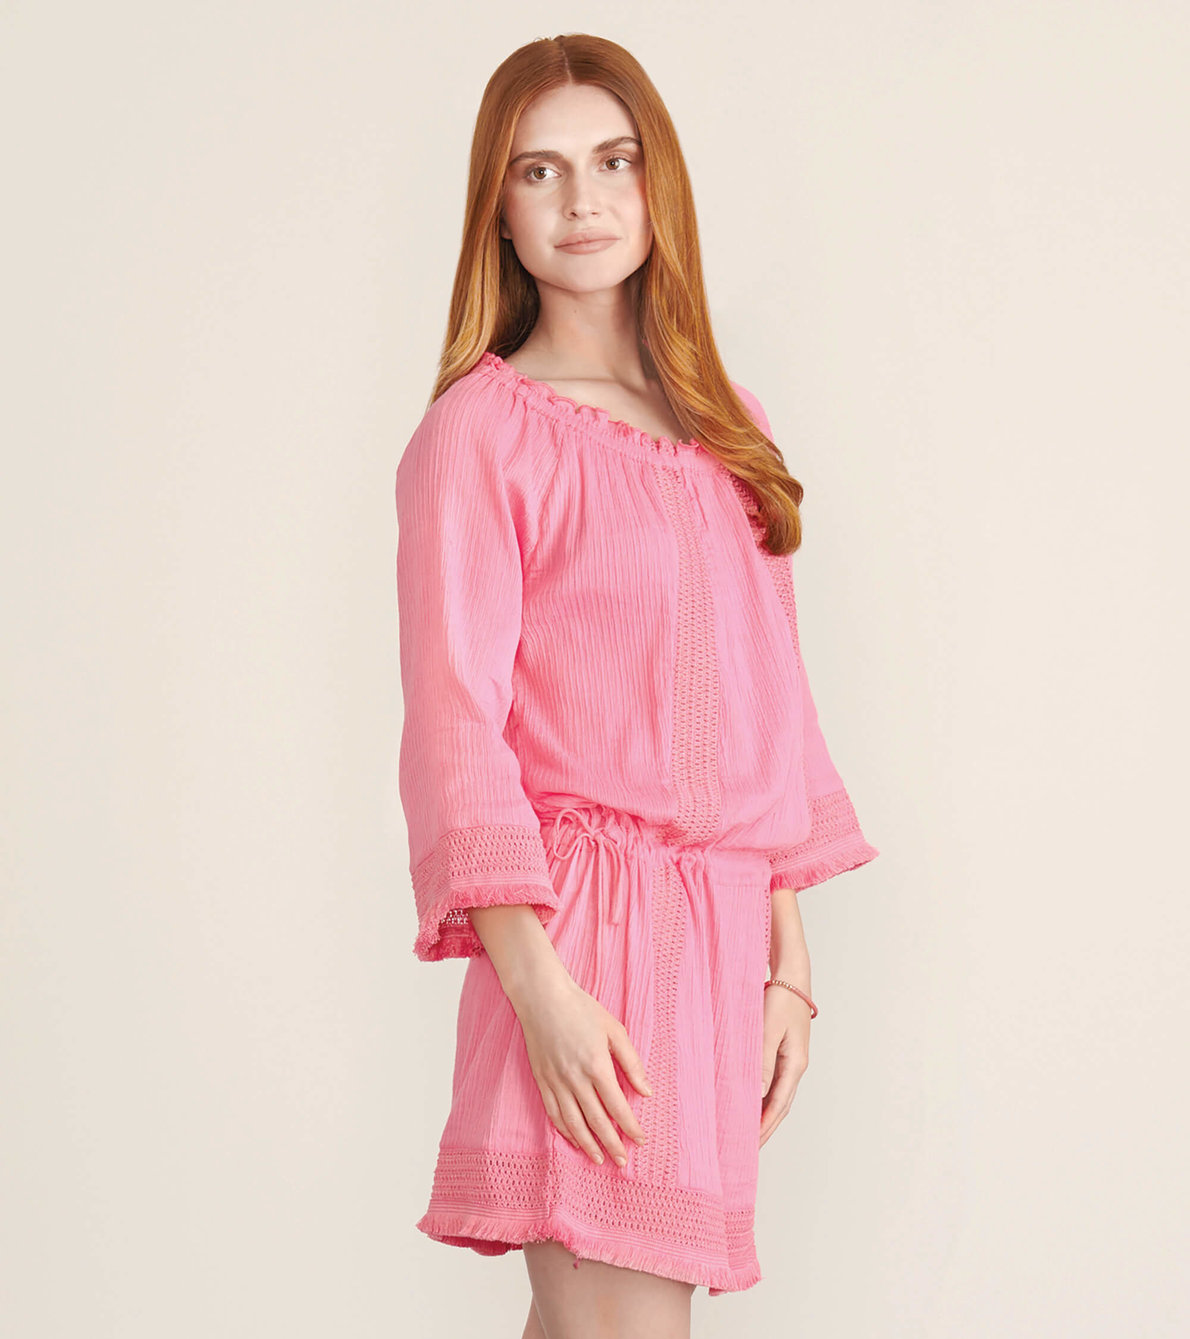 View larger image of Sanibel Beach Cover Up - Neon Fuchsia